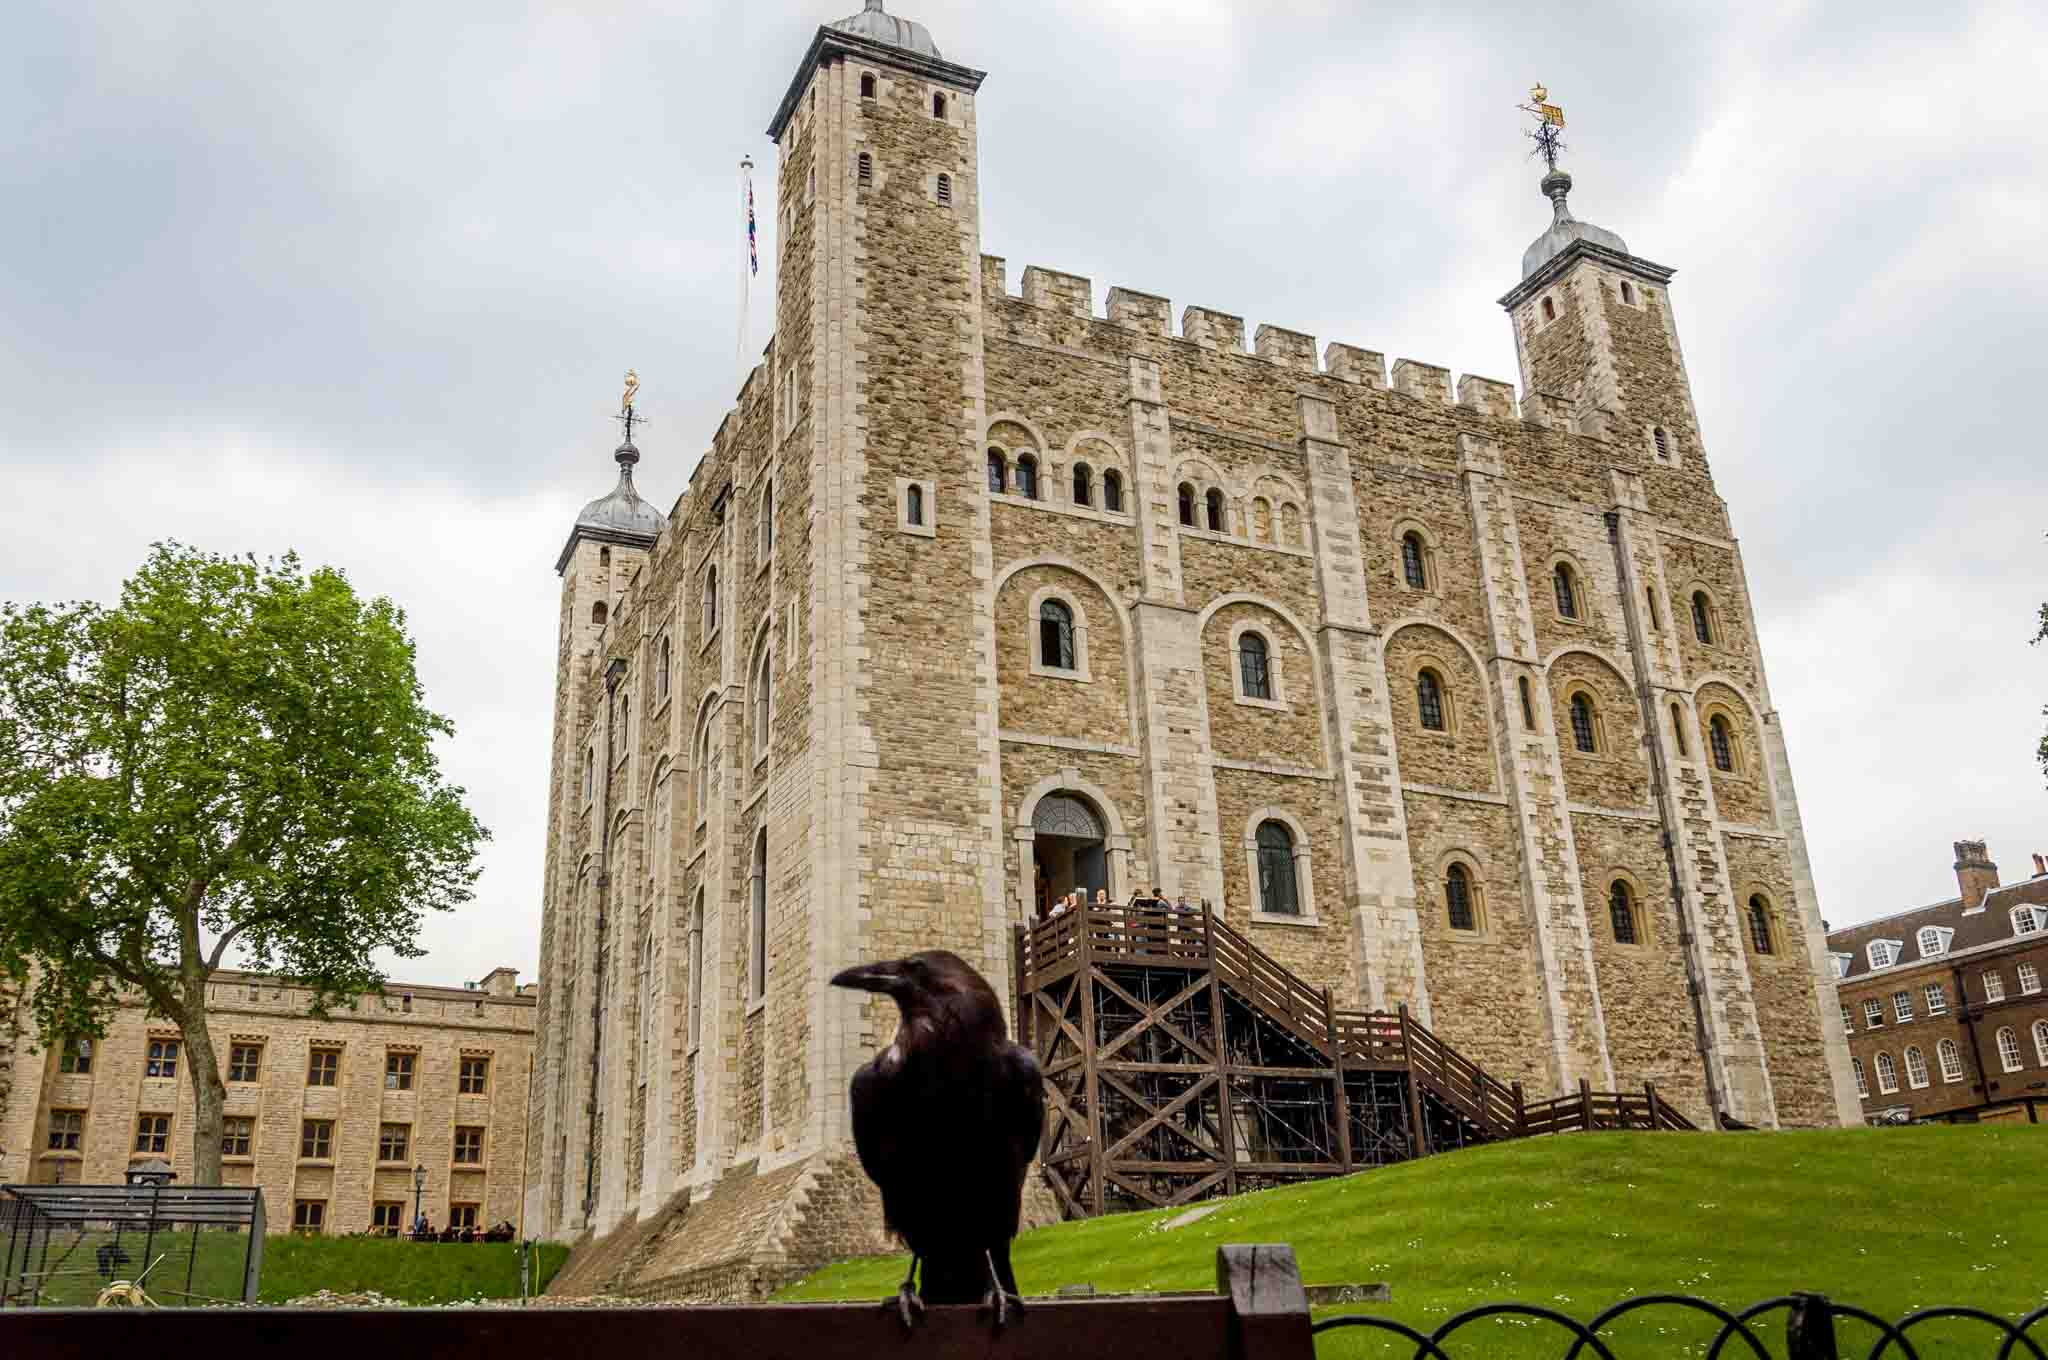 The Tower of London hosts a number of famous ravens.  Here, one poses for a picture in front of the Tower.  The Tower of London is the final stop on your Heathrow Layover.